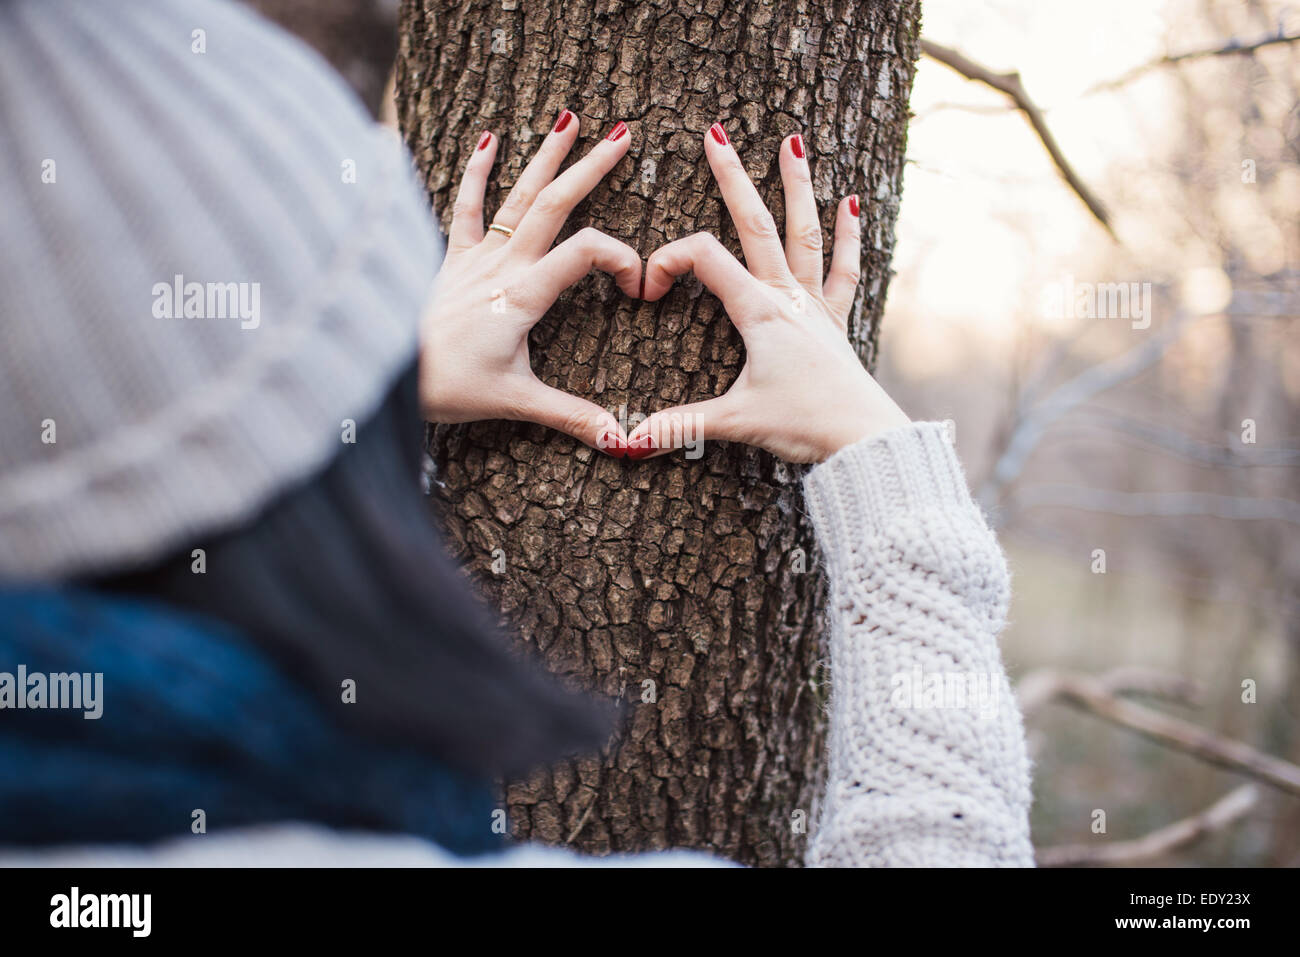 Hands making a heart shape on a tree trunk - Stock Image